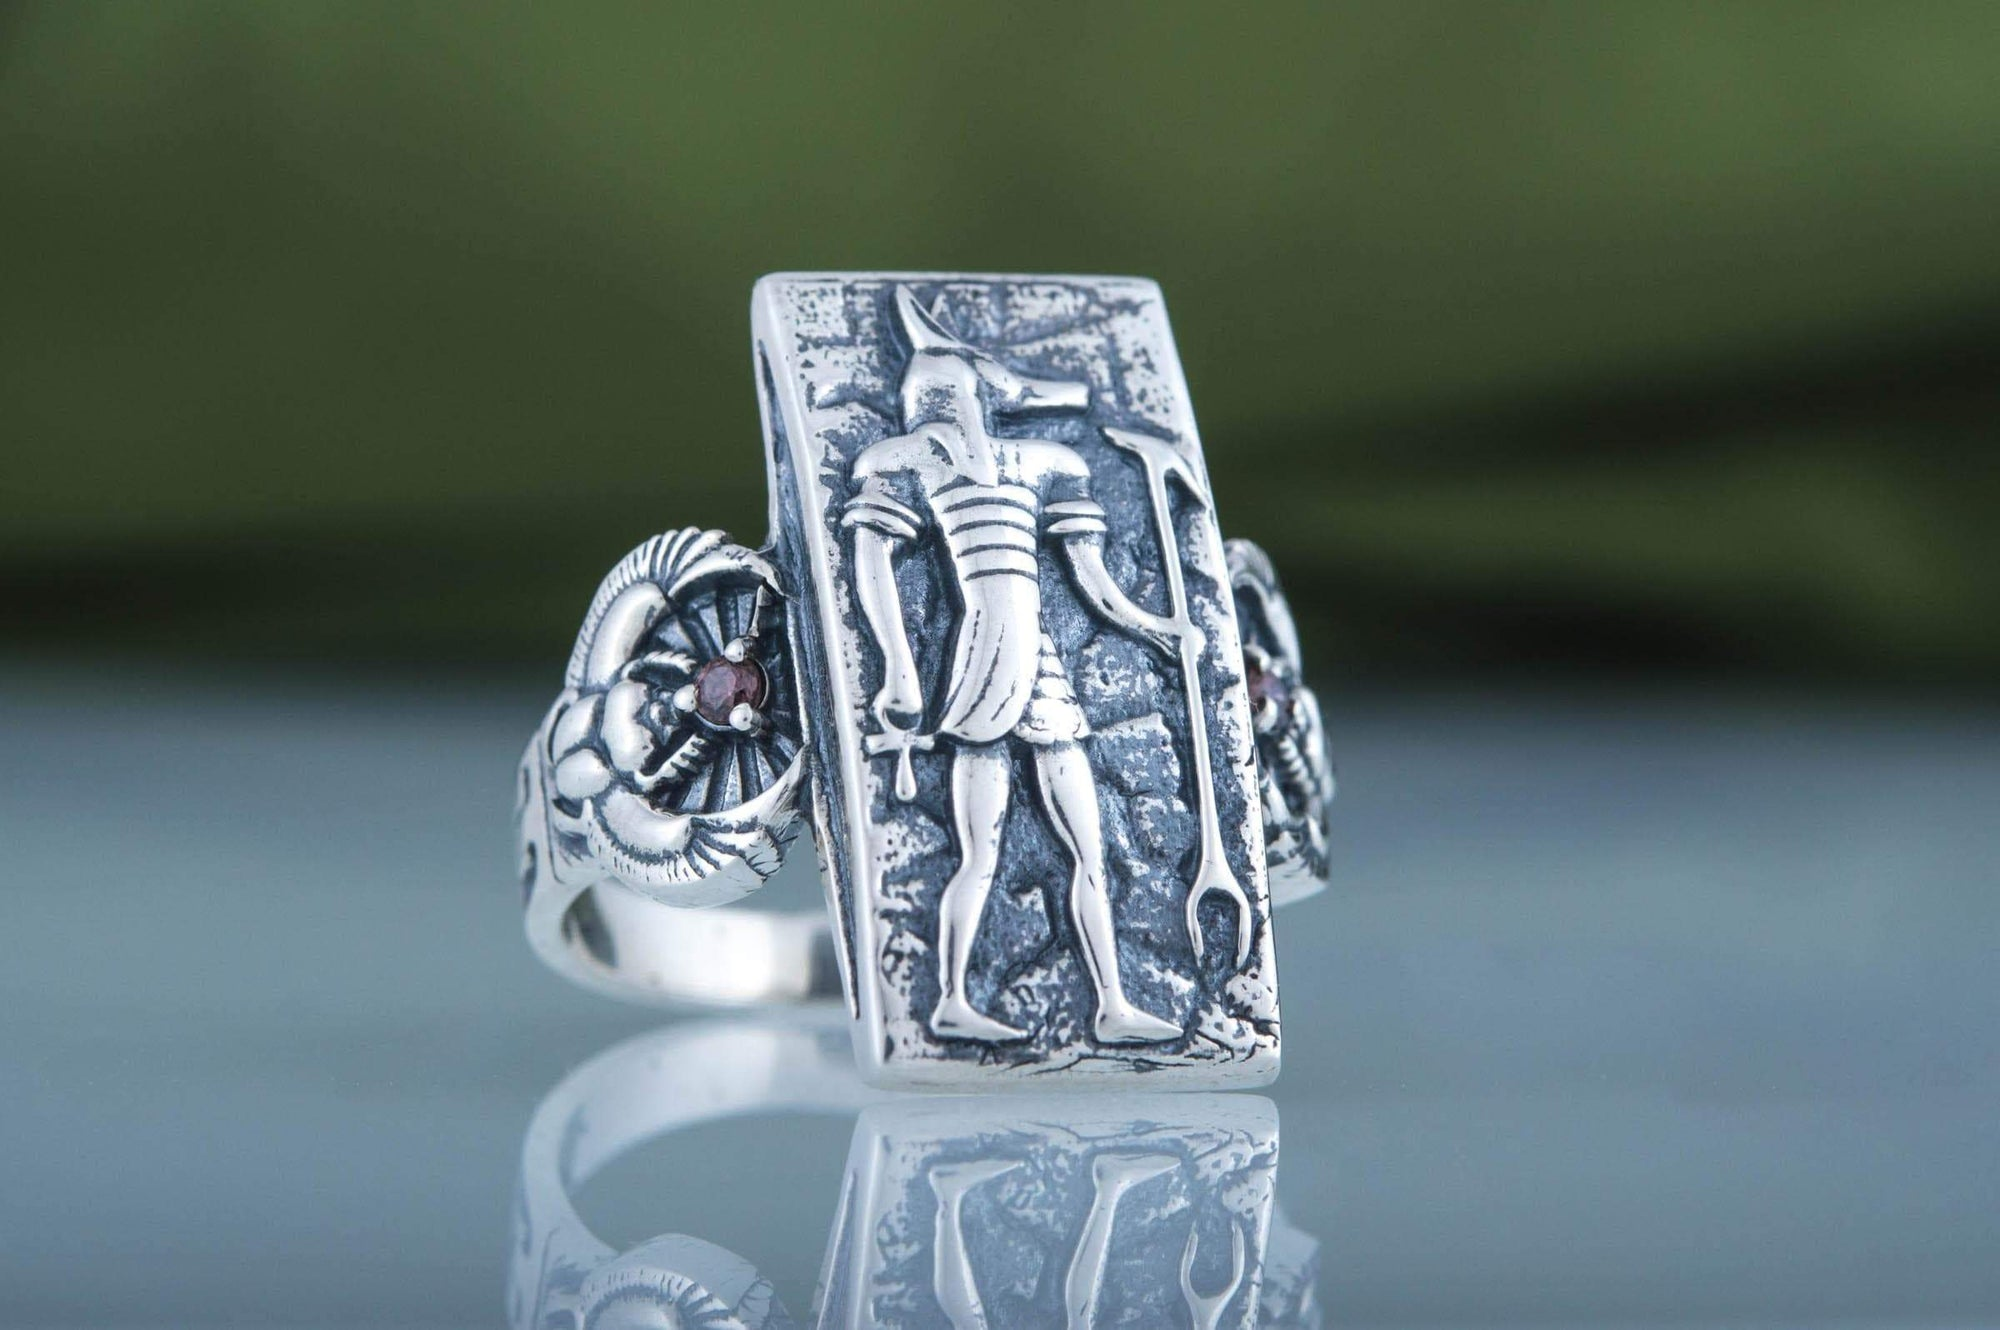 Rings Ancient Egypt Sterling Silver Ring with Anubis Ancient Treasures Ancientreasures Viking Odin Thor Mjolnir Celtic Ancient Egypt Norse Norse Mythology